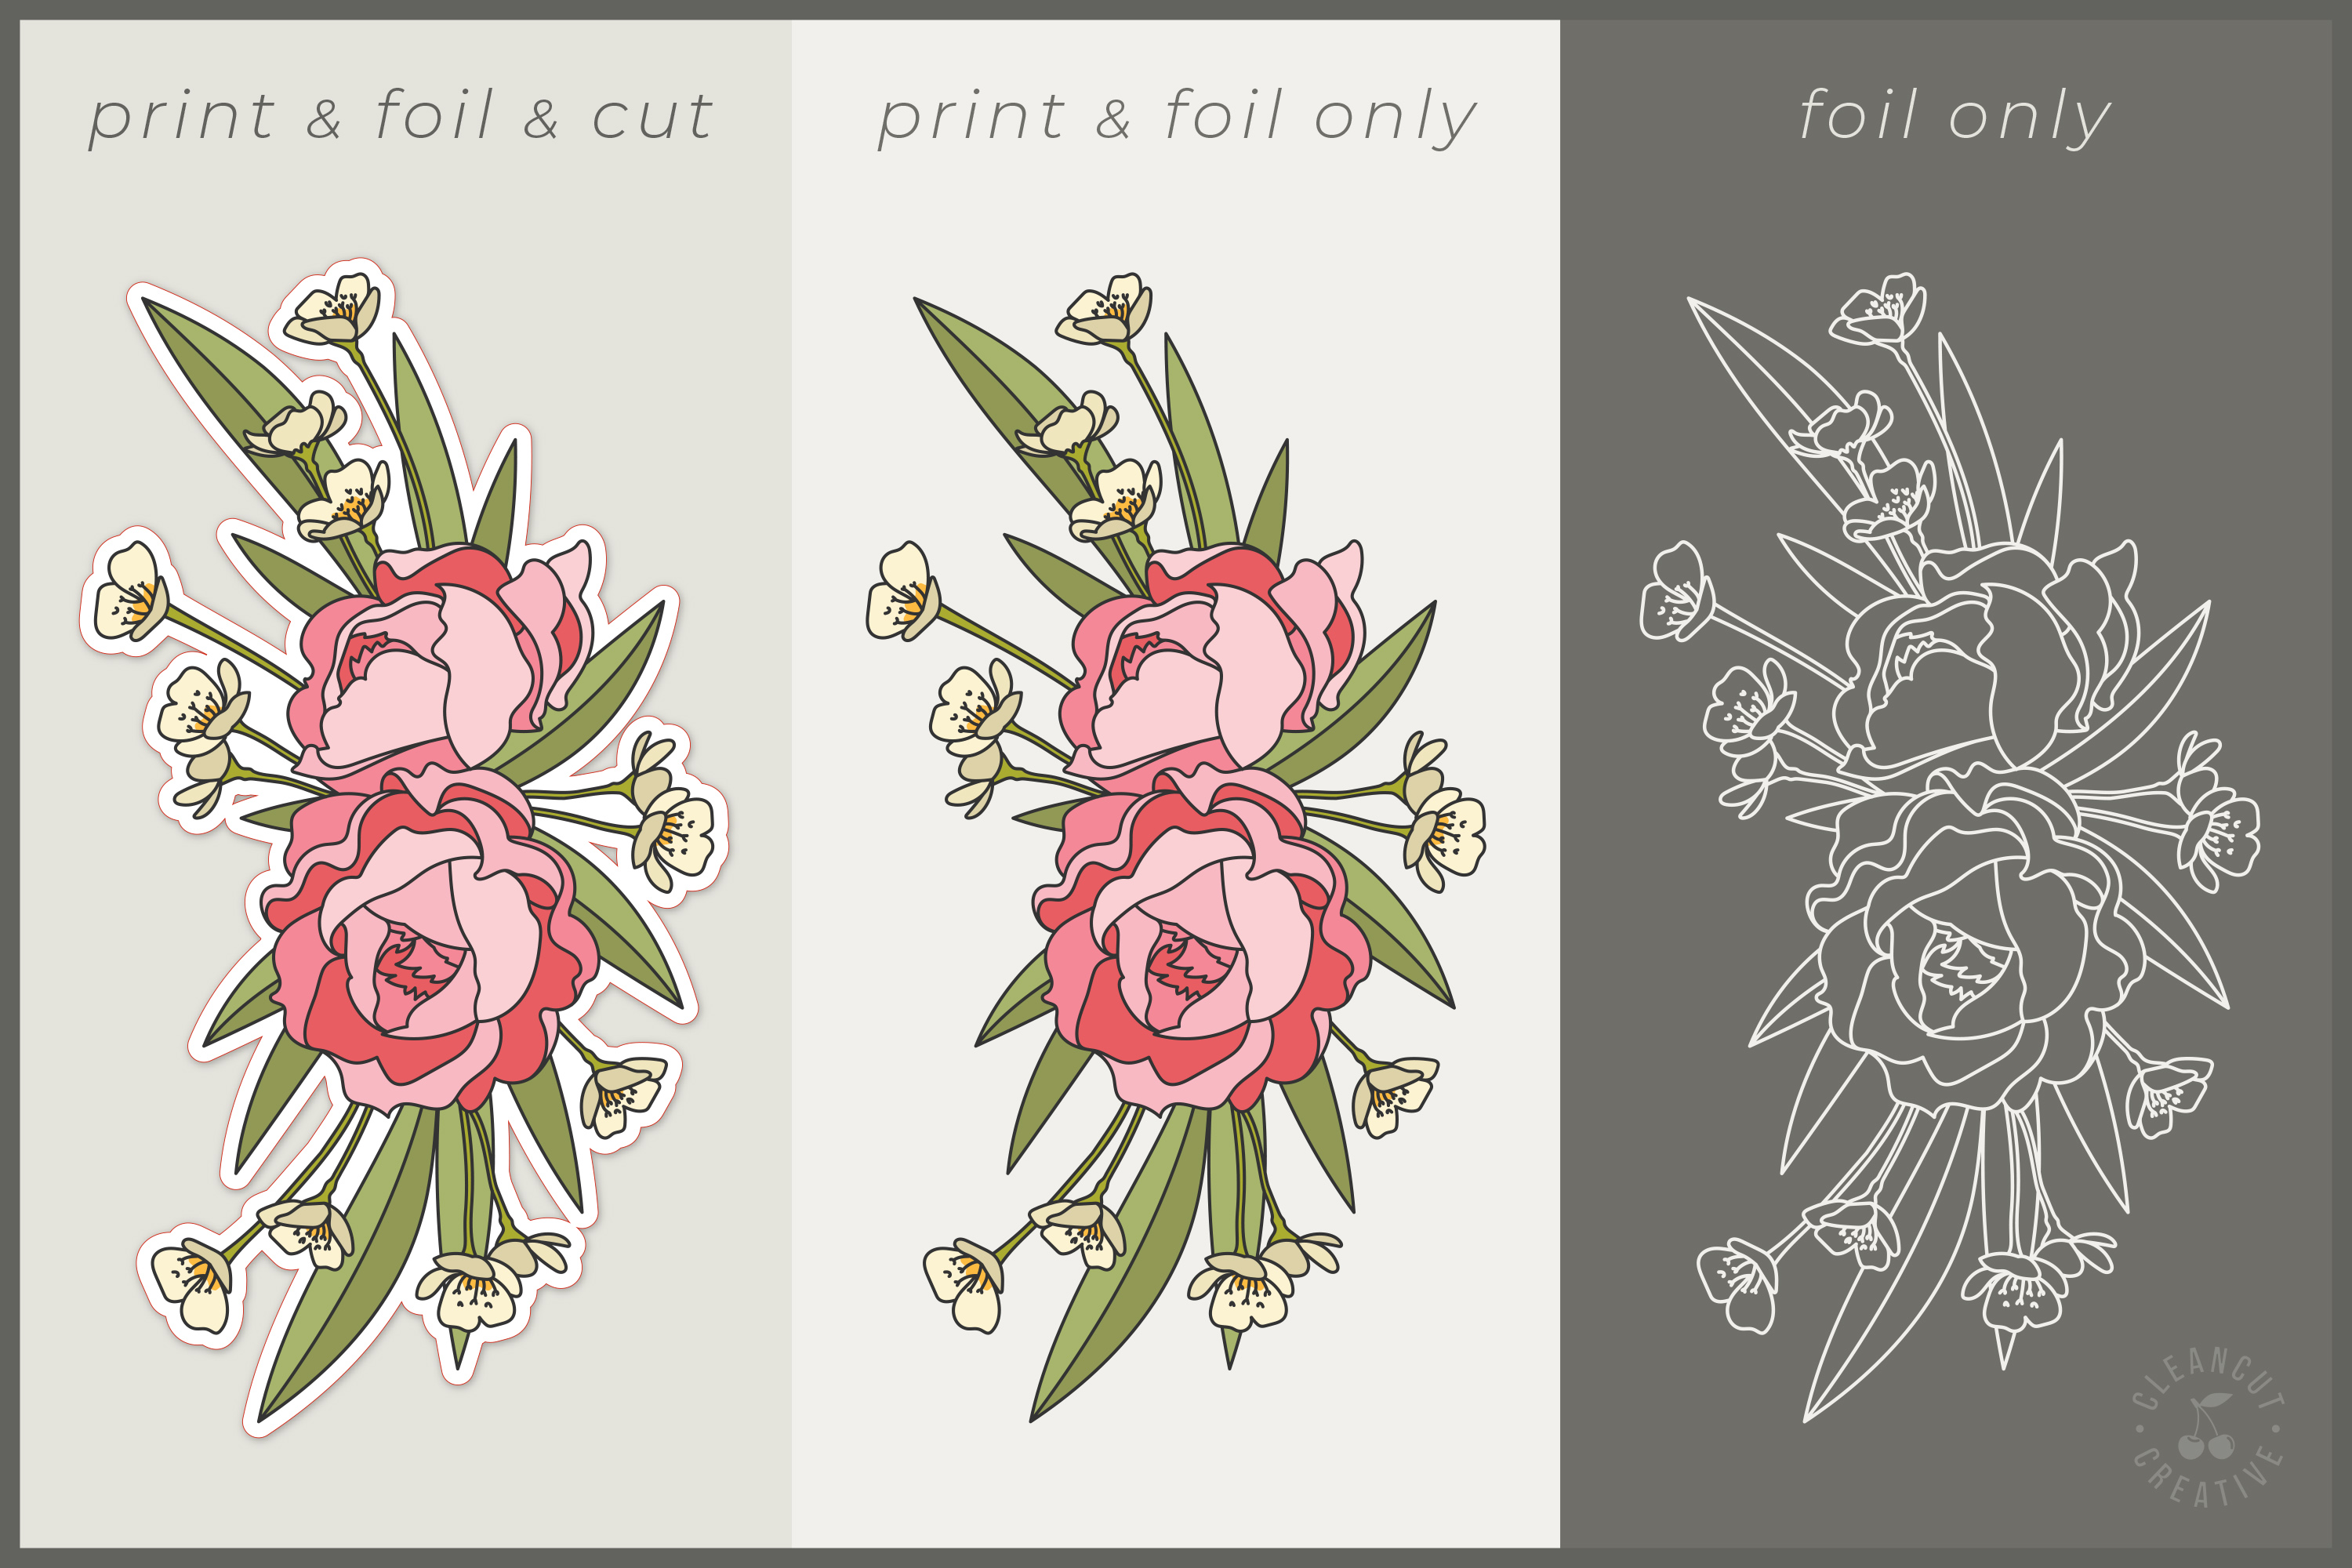 Foil Quill Flowers | Print & Foil single line sketch design example image 3